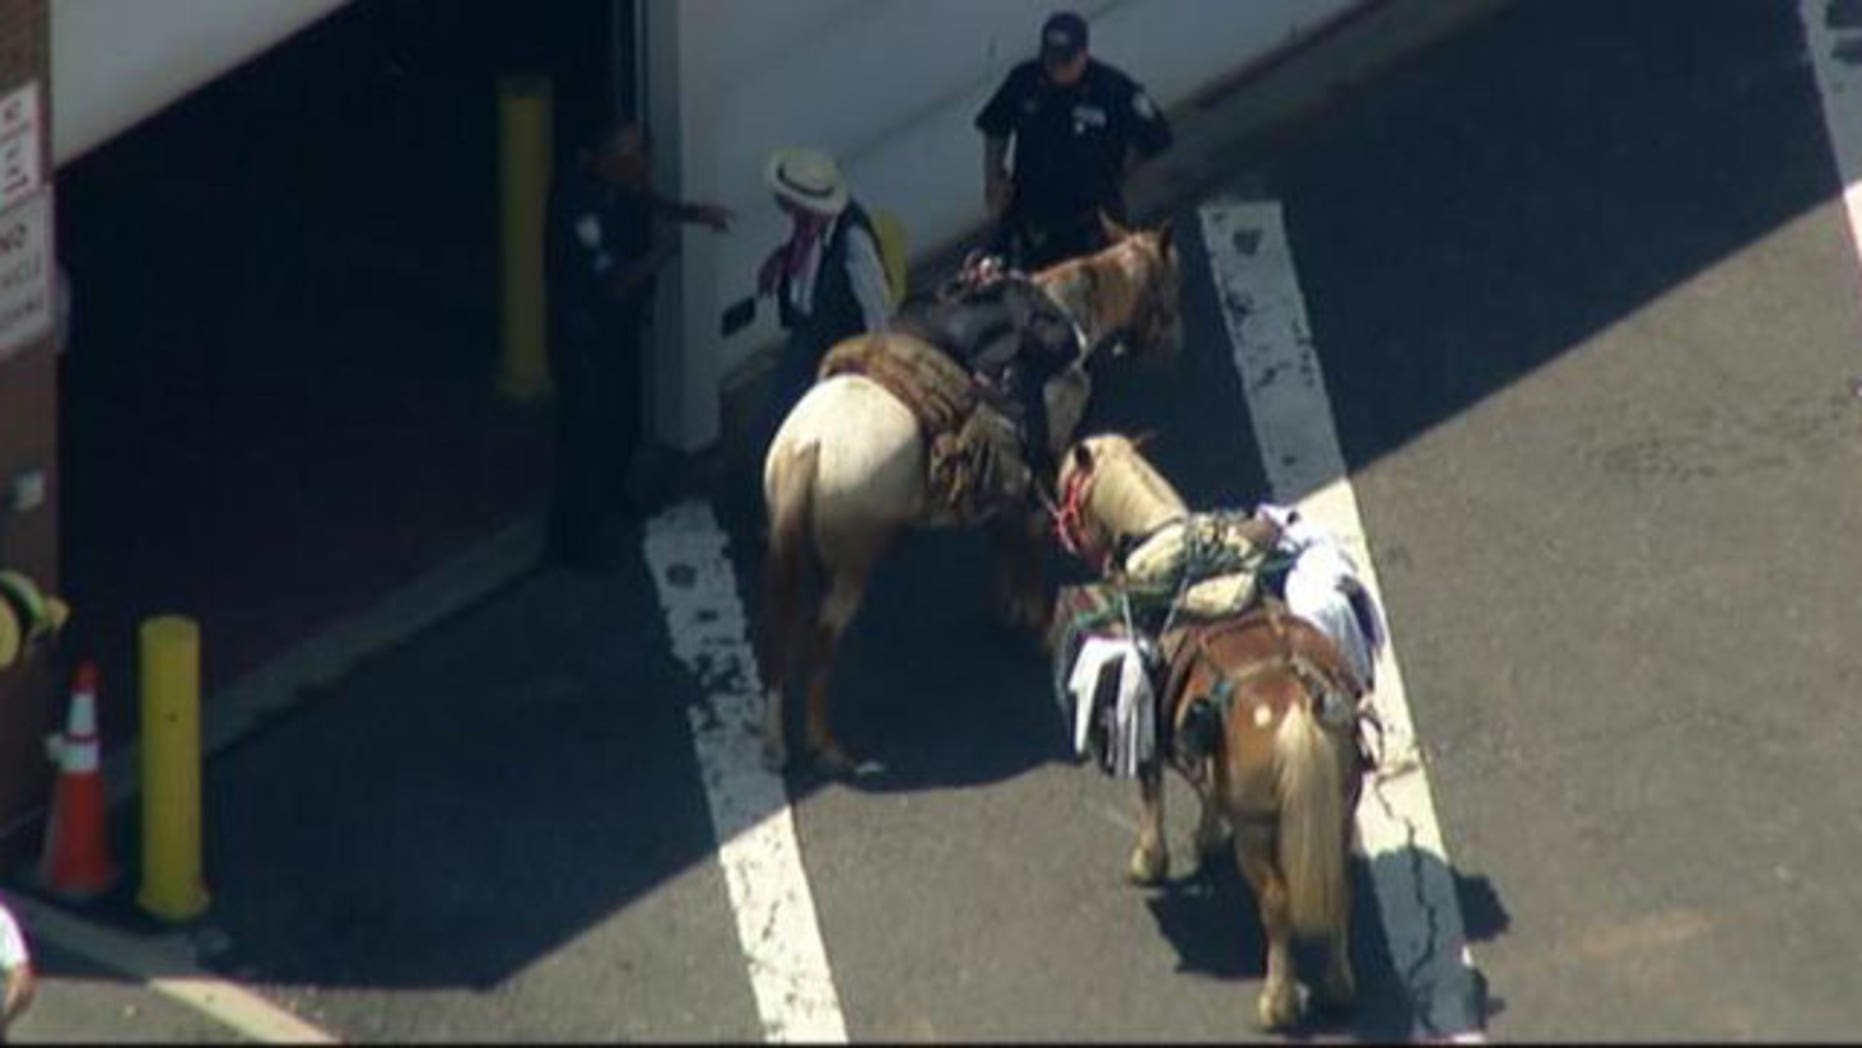 Police stopped the man dressed as a cowboy after he and his horses crossed the bridge.